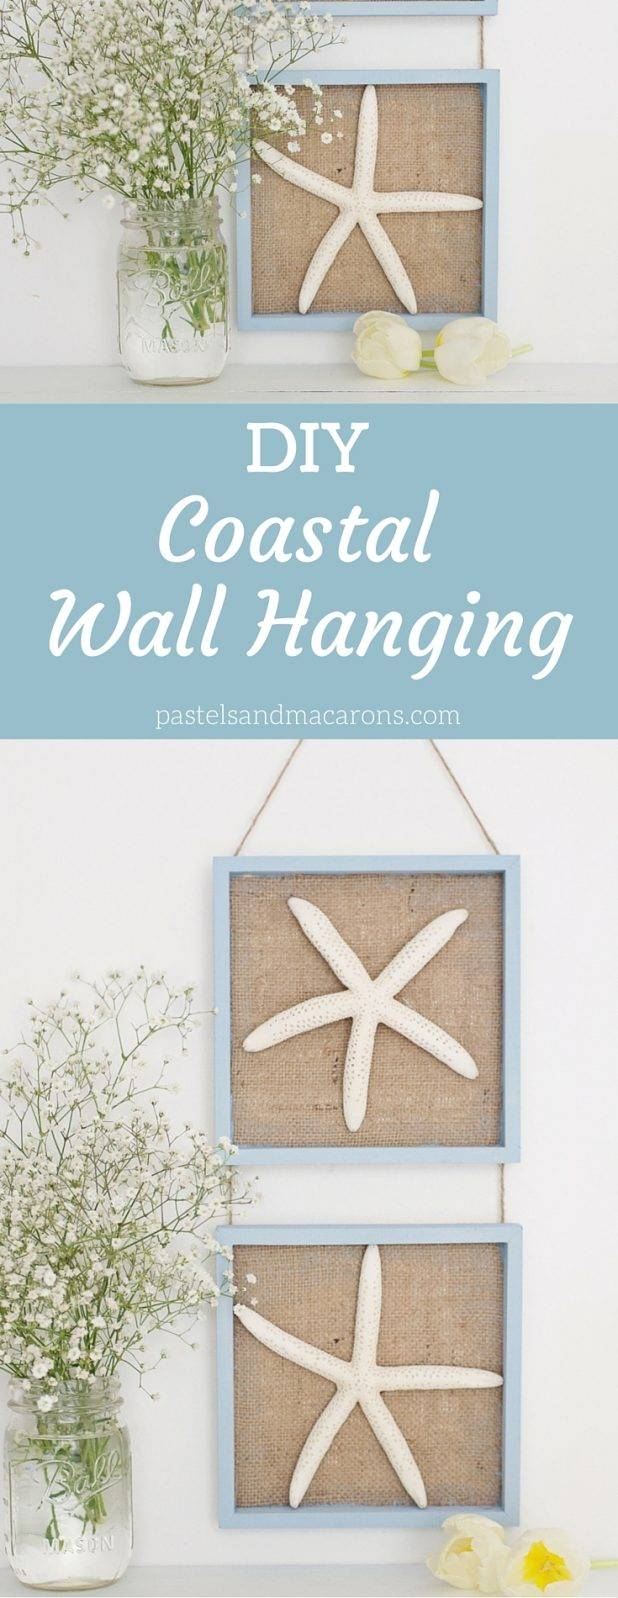 Amazing Coastal Decor Wall Clocks Image Of Turquoise Coastal Intended For Current Crate Barrel Coastal Wall Art (View 9 of 20)